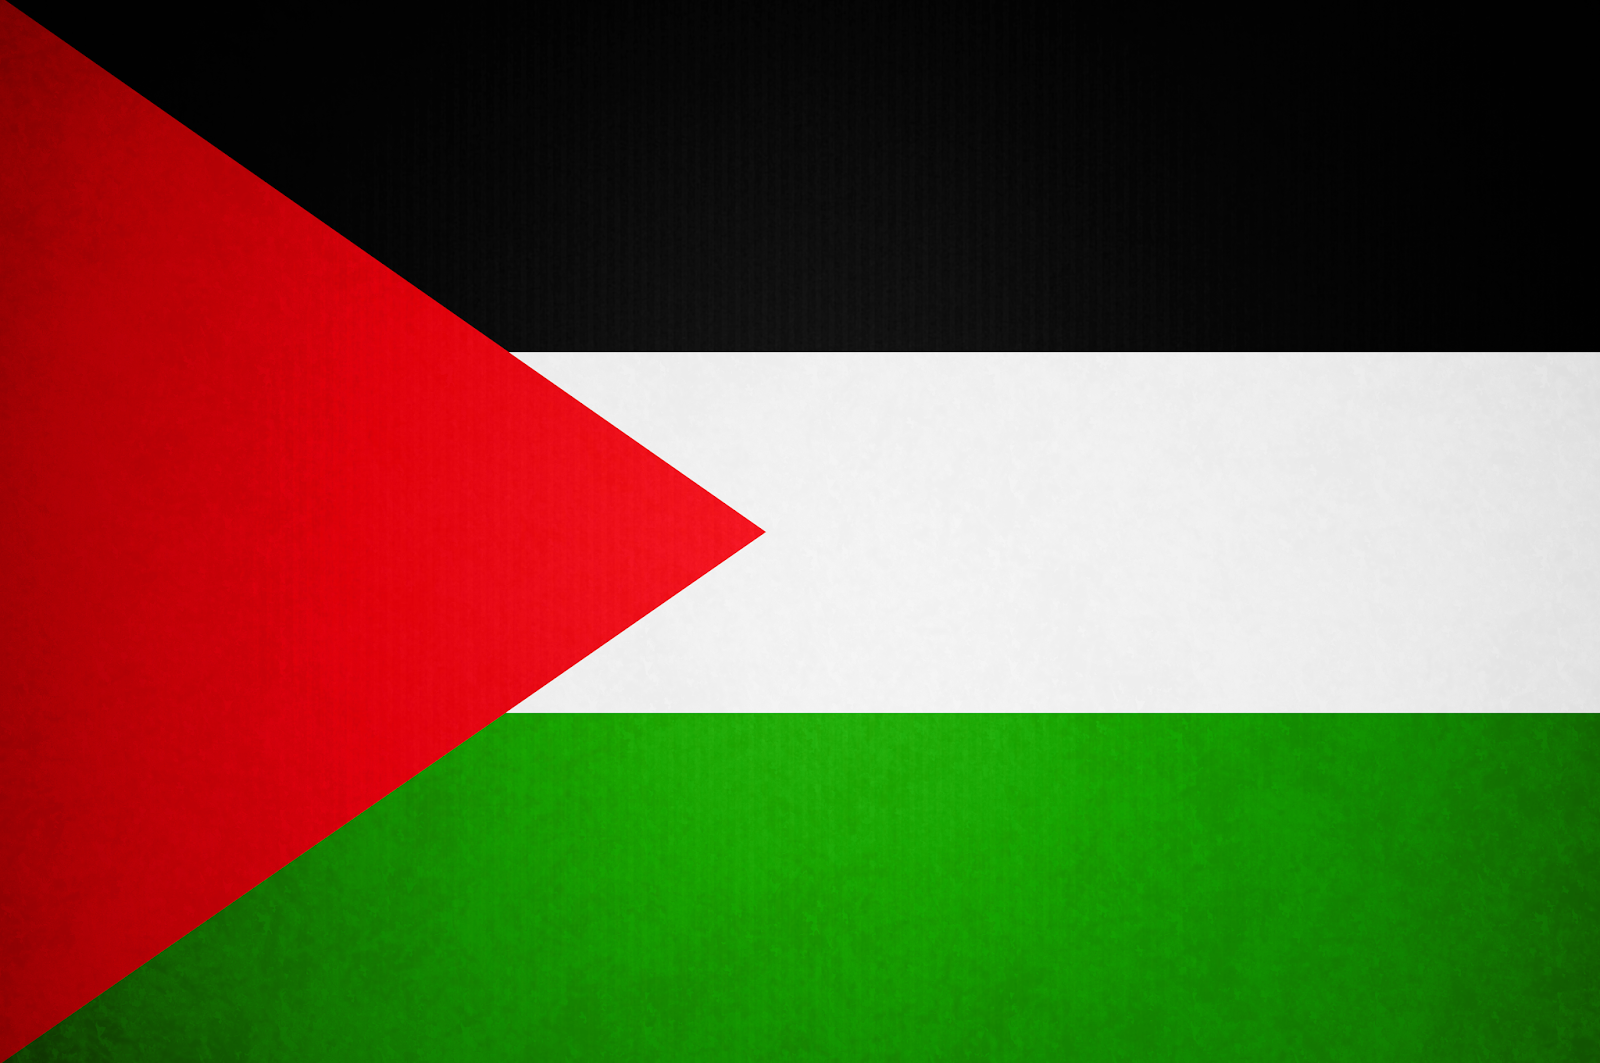 palestinian flag hd png علم فلسطين - Flag HD PNG